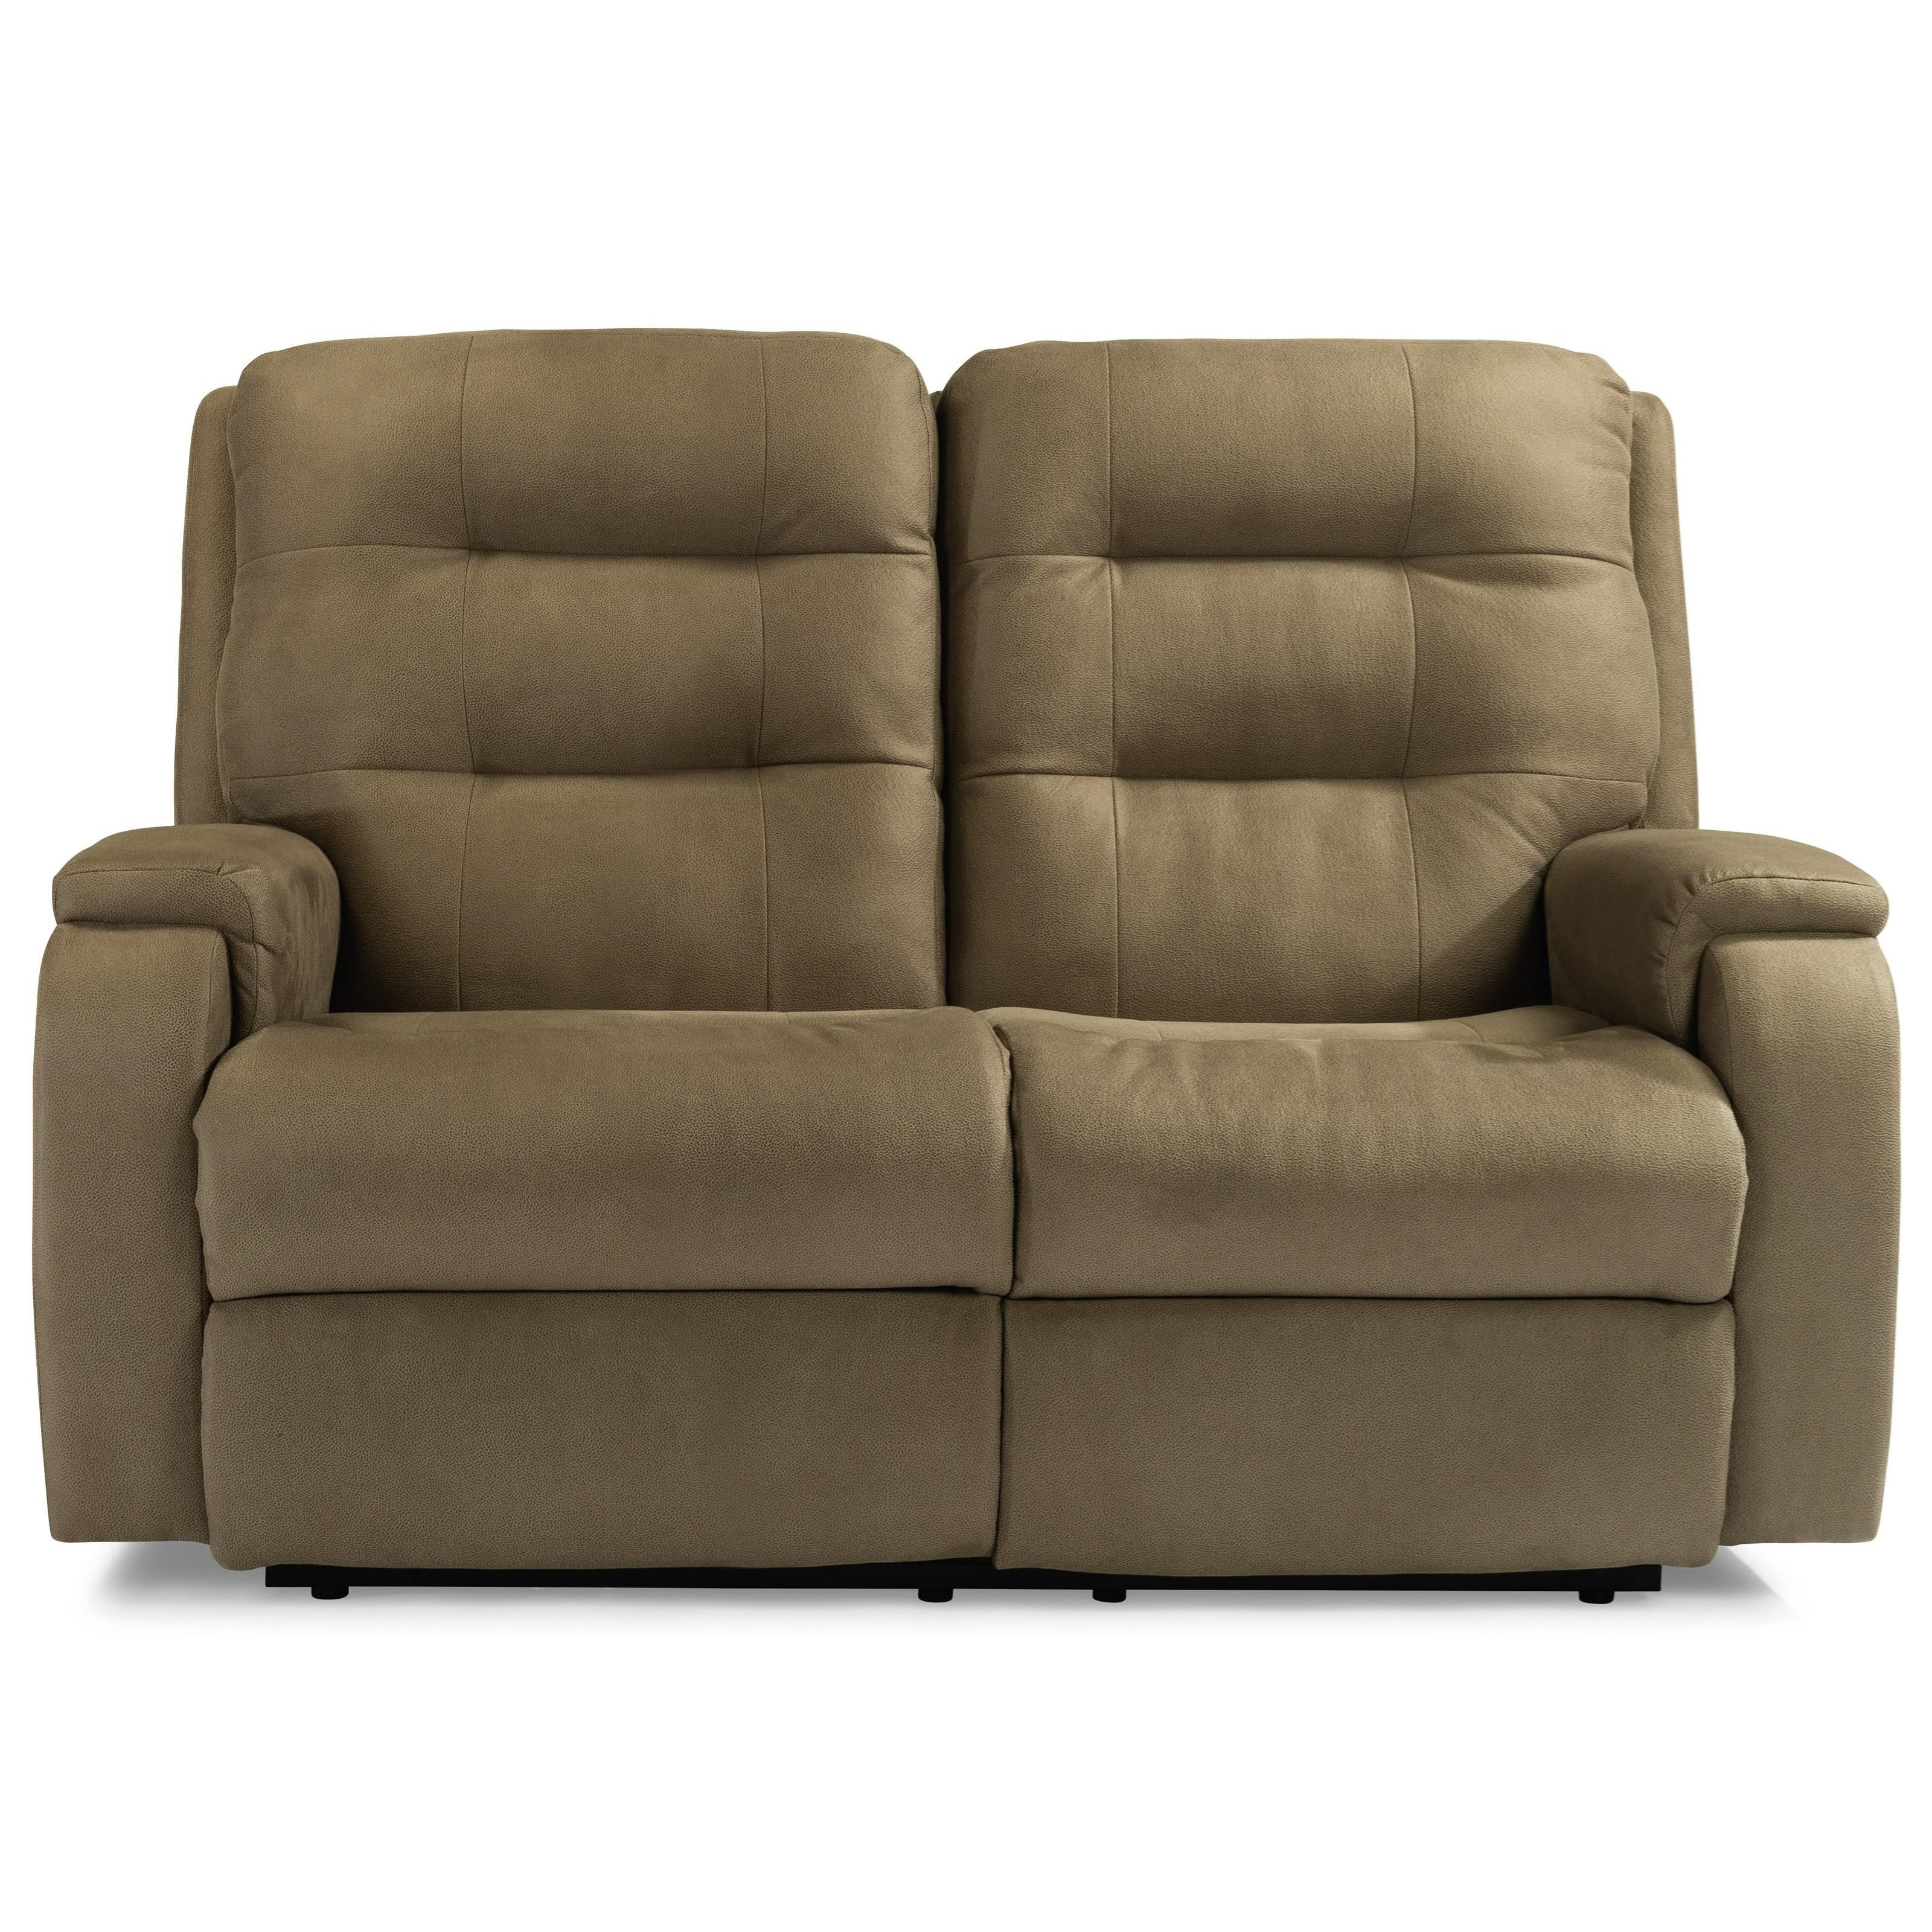 Arlo Power Reclining Loveseat  by Flexsteel at Pilgrim Furniture City